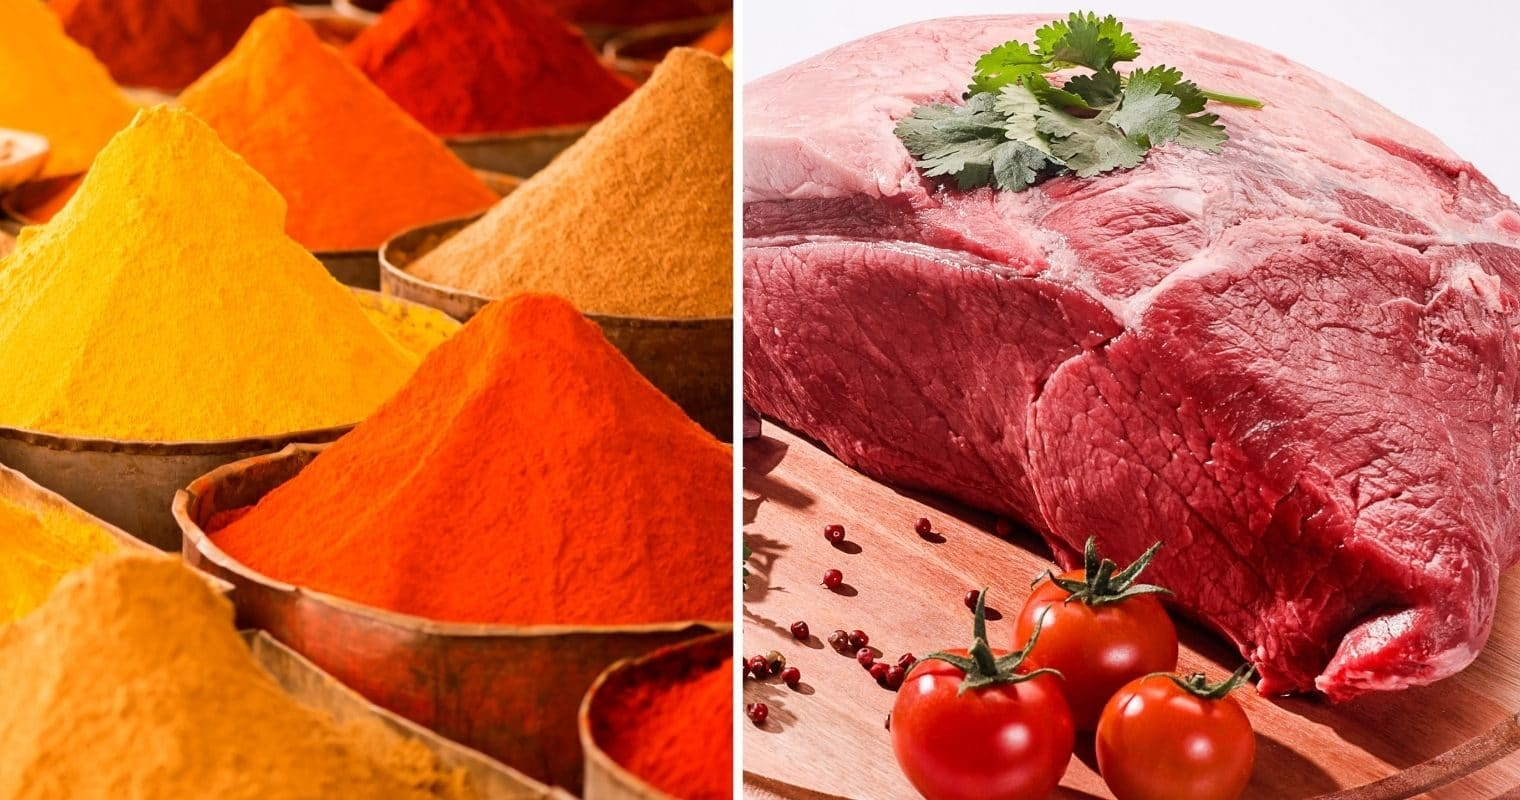 Foods To Eat And Avoid If You Have Arthritis